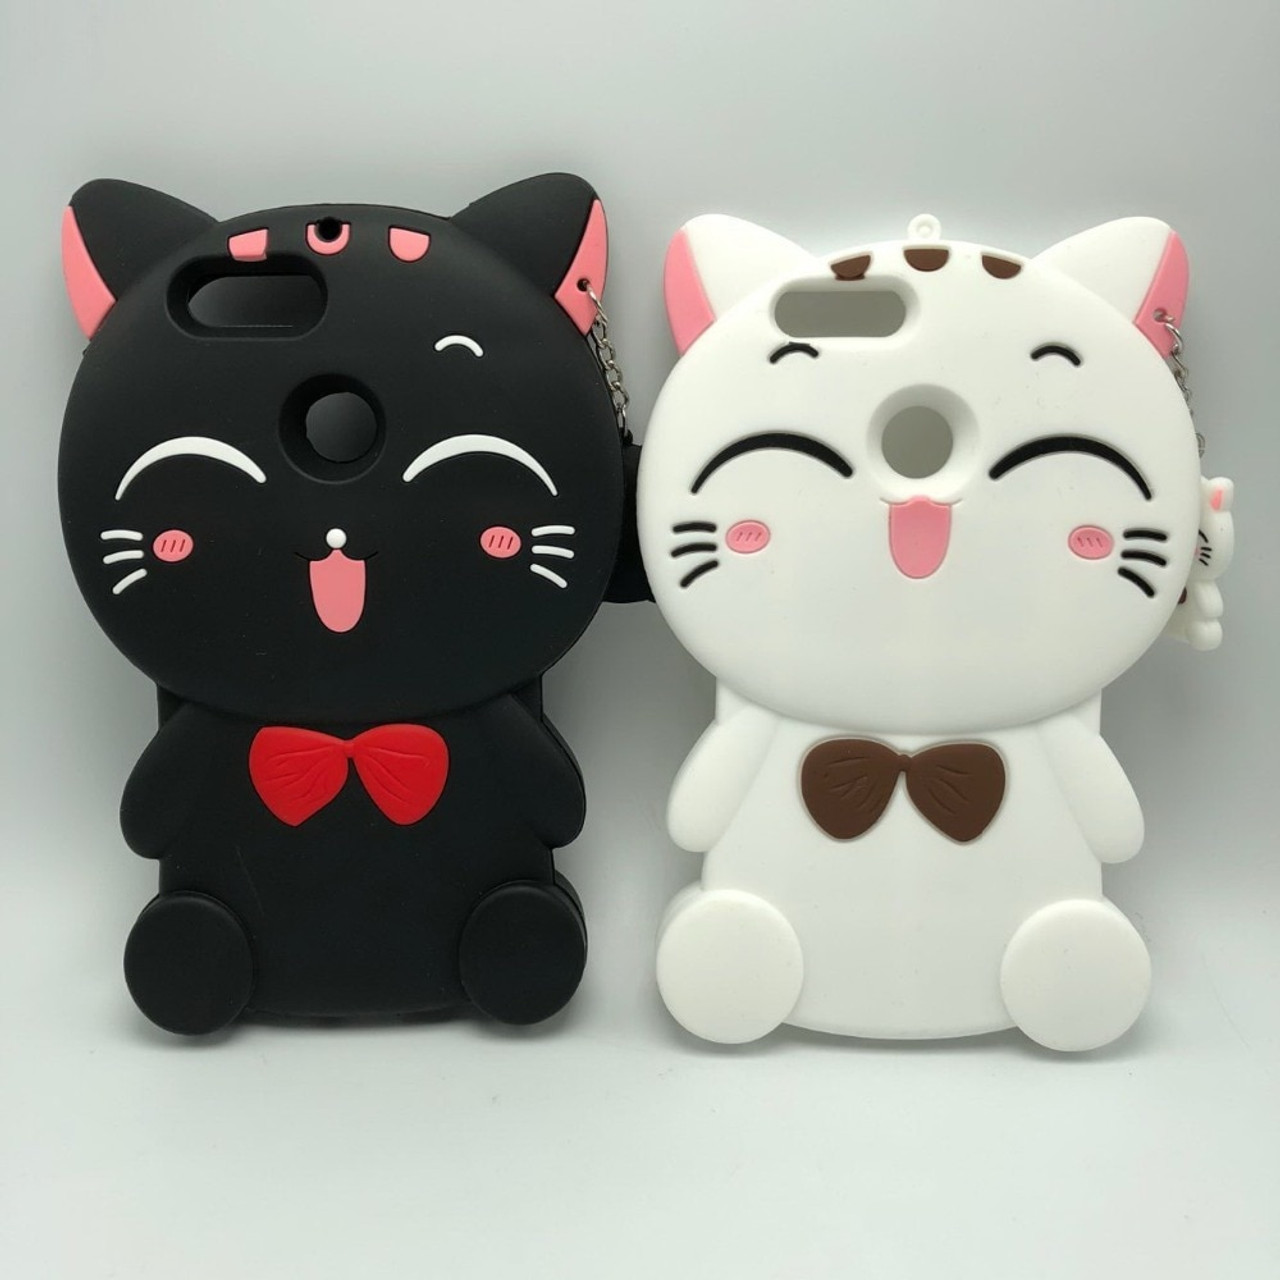 super popular 3a2e9 7c533 For Huawei Honor 9 Lite 3D Silicon Lucky Cat Cartoon Soft Cell Phone Case  Cover for Honor 9 Lite 5.65 inch